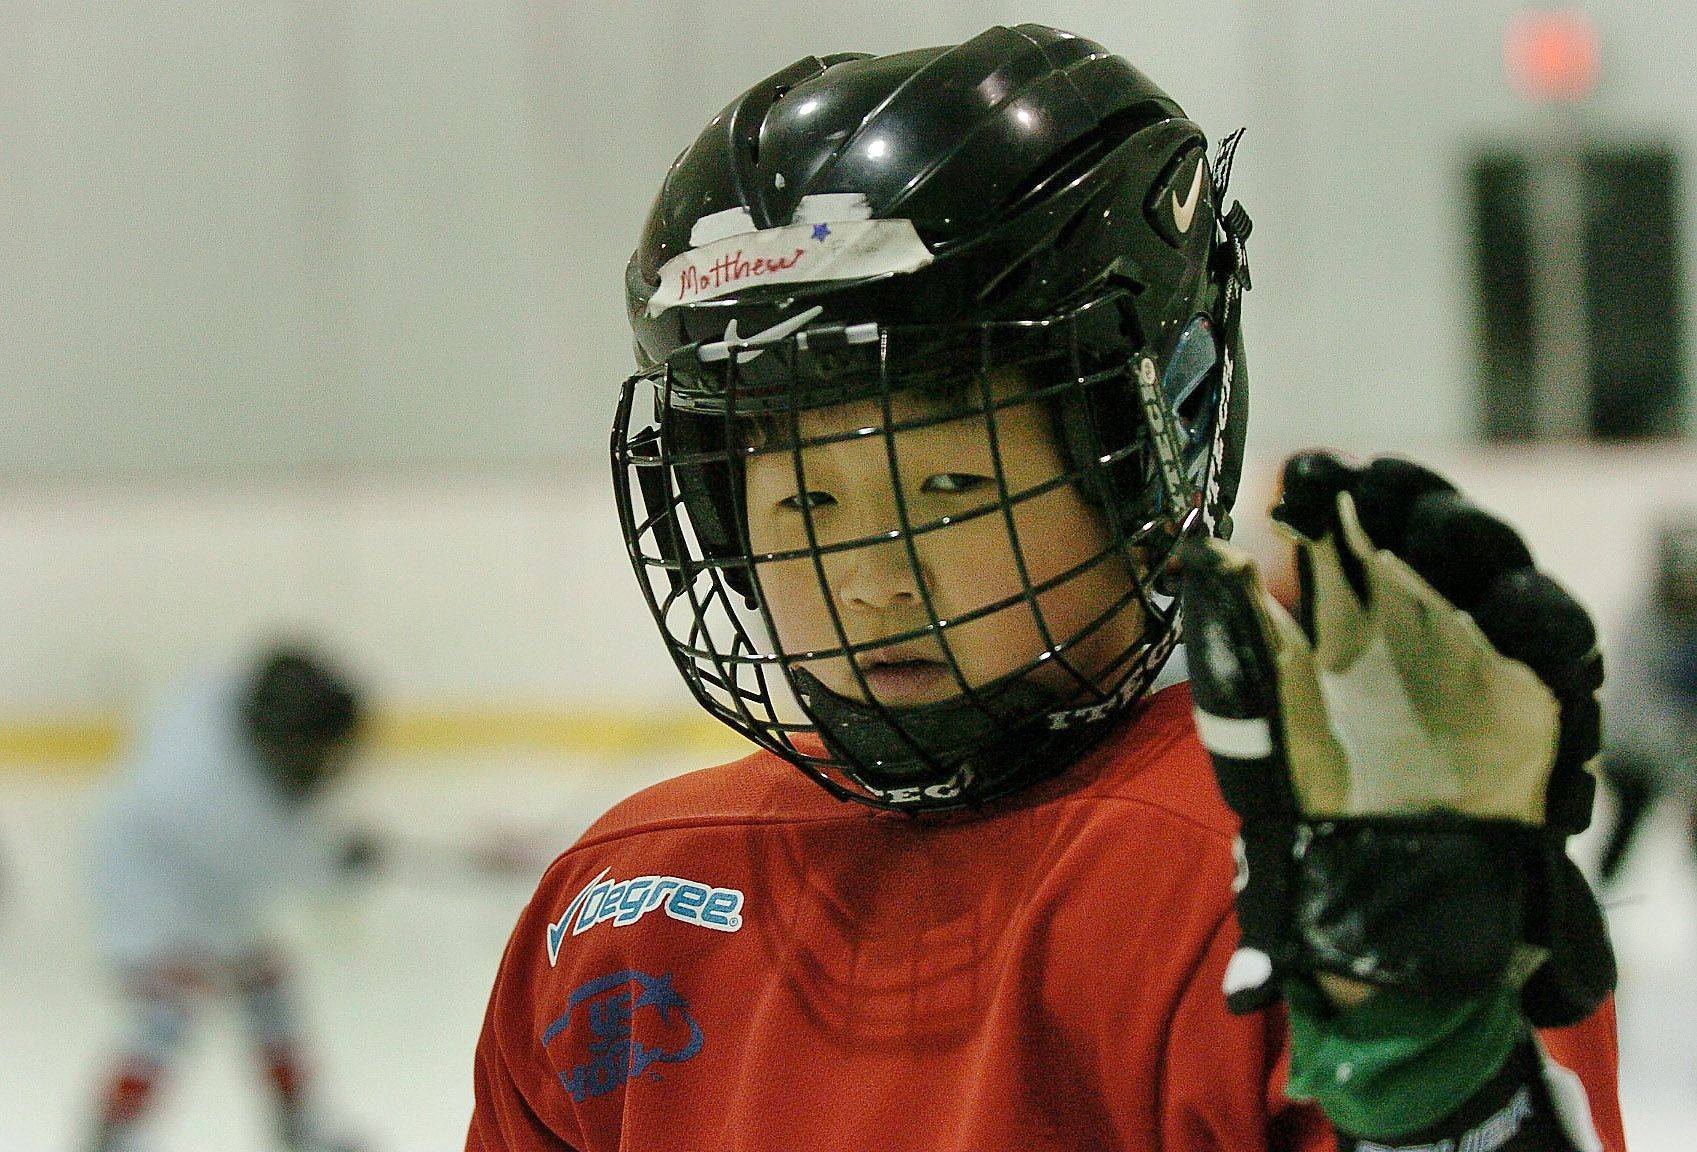 Matthew Bae, 11, of Algonquin waits for the open skate before practice for the Hoffman Estates Park District's youth ice hockey program.